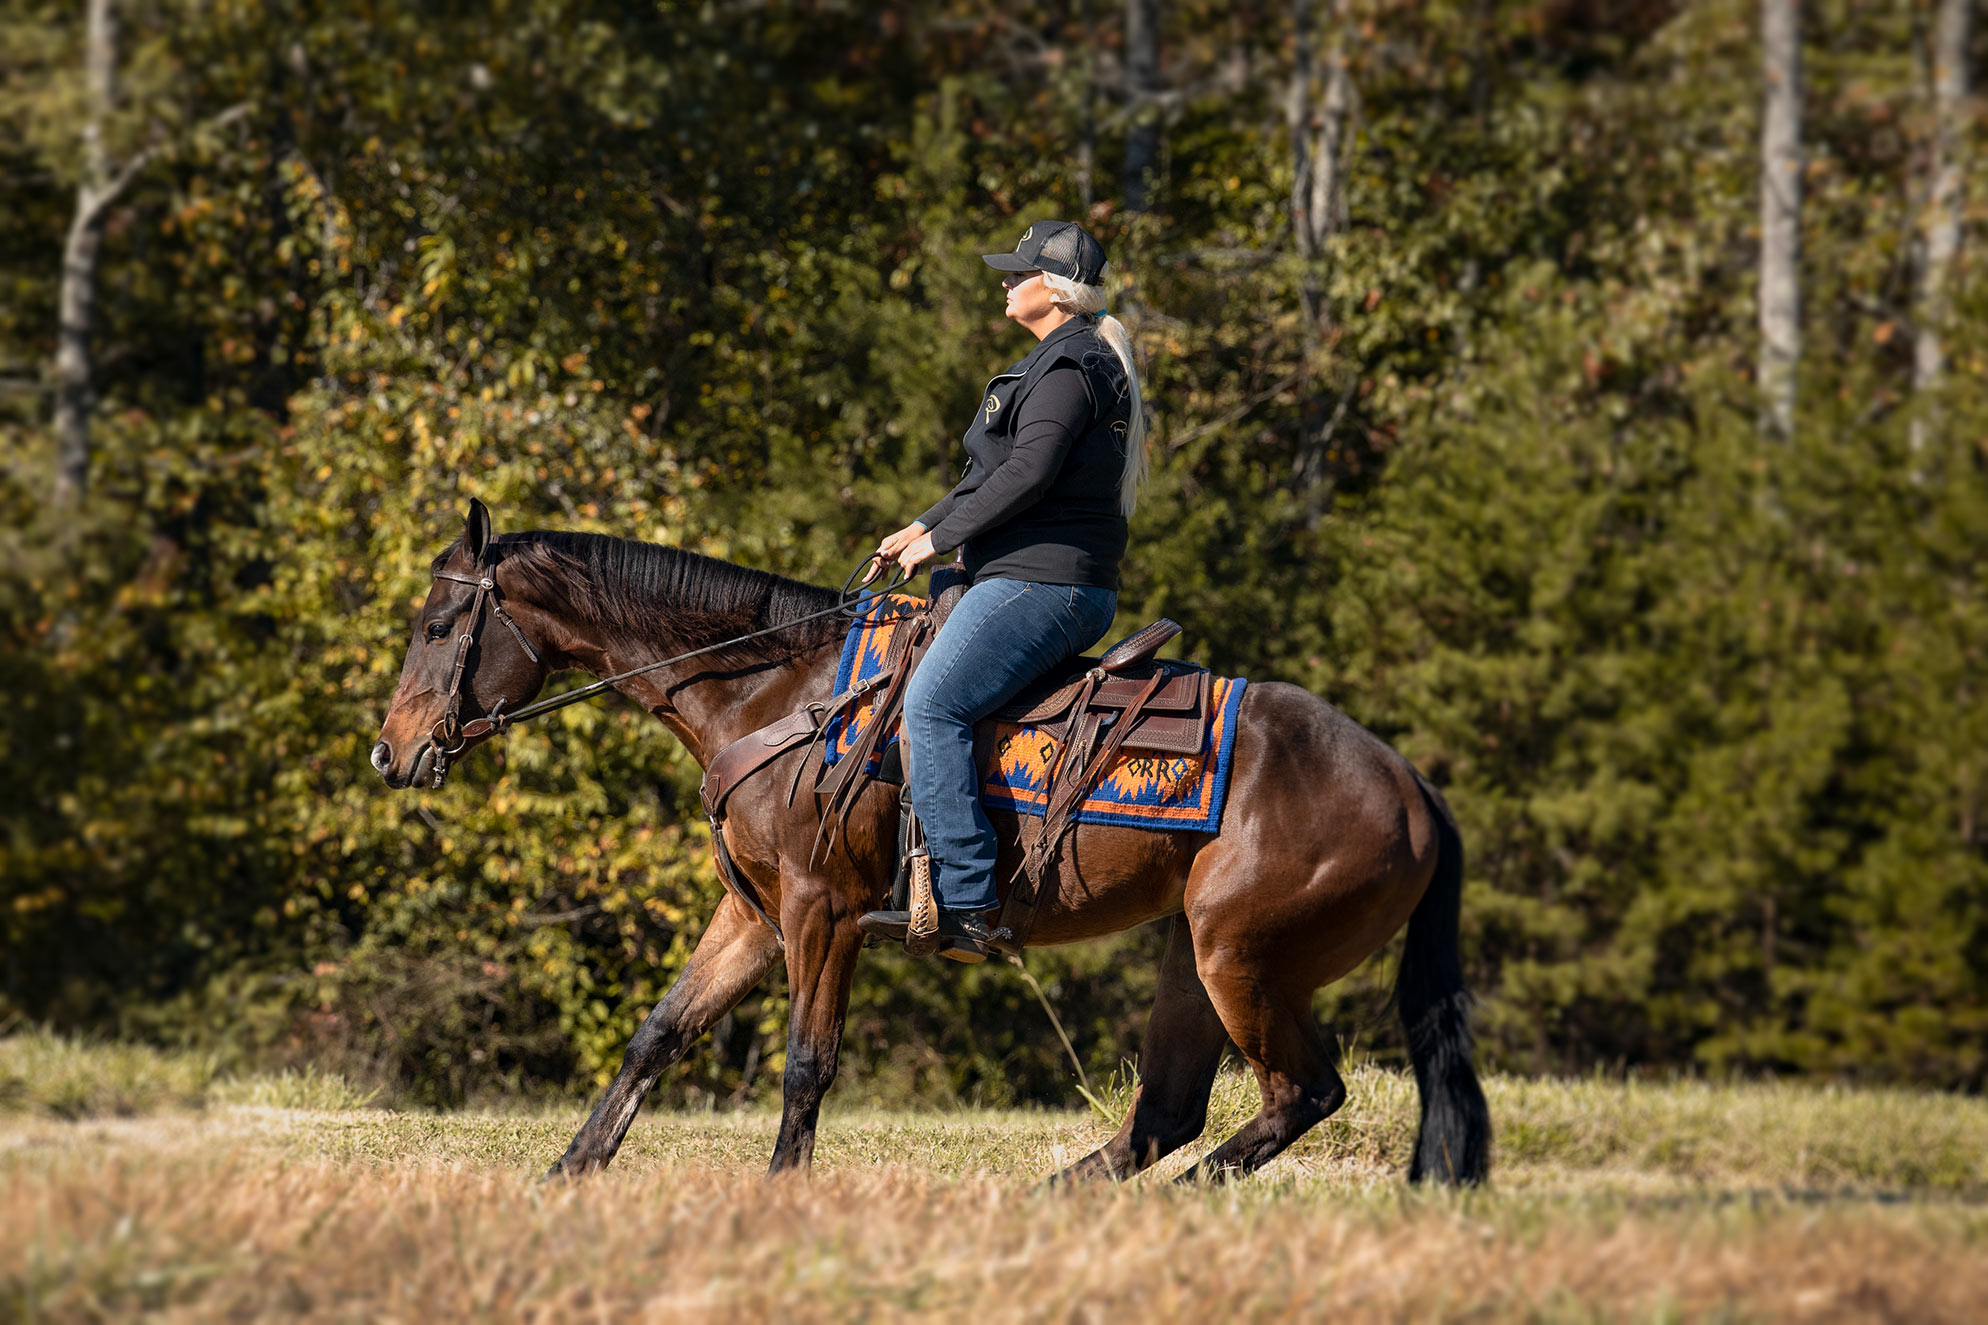 014-Ace-Luxury-Trail-Horse-For-Sale